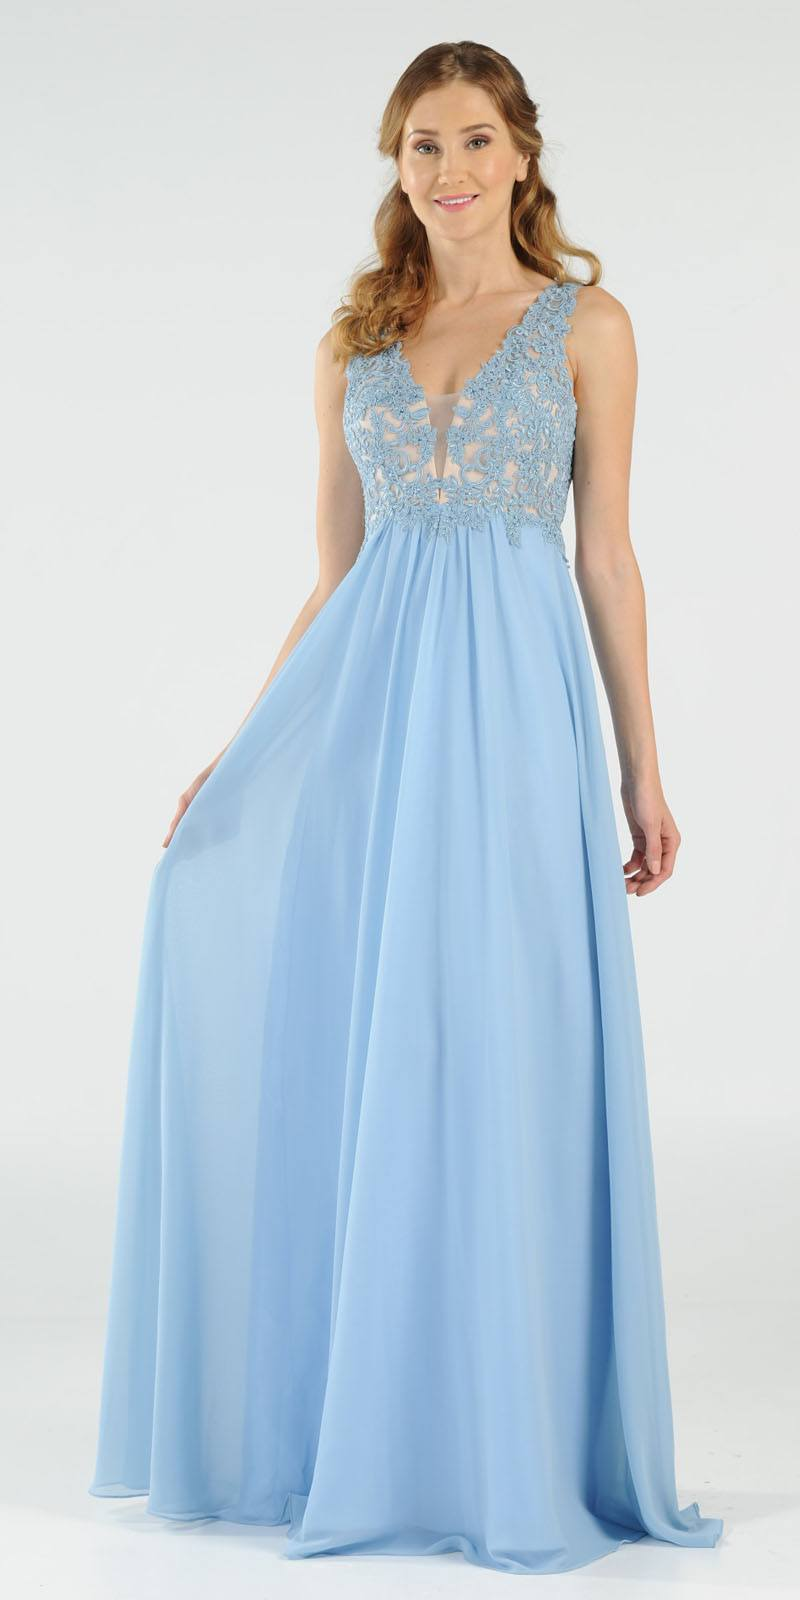 5ab81c84dd7 Ice Blue V-Neck Long Formal Dress Empire Waist Appliqued Bodice. Tap to  expand